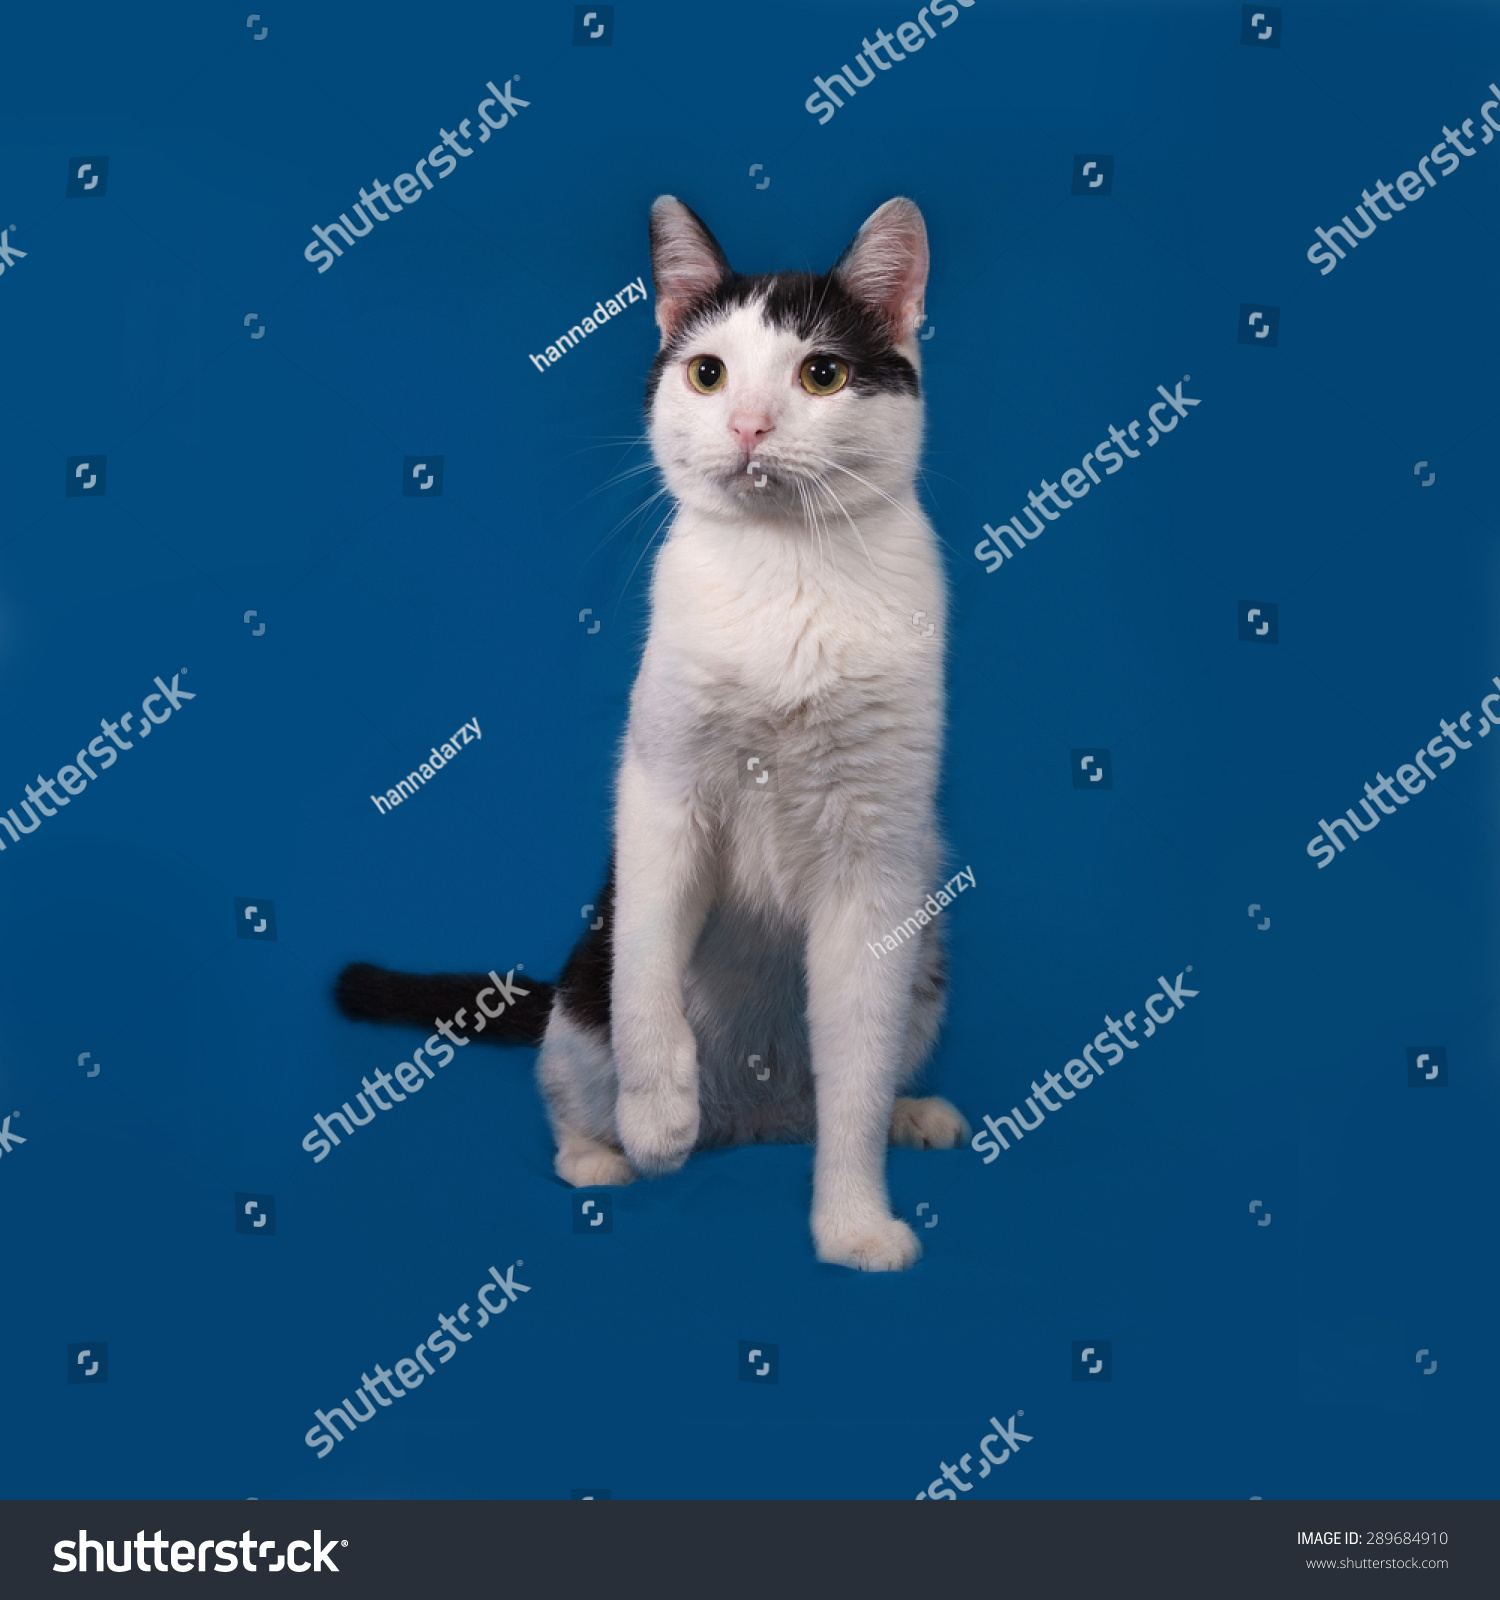 White Black Cat Sitting On Blue Stock Photo 289684910 - Shutterstock